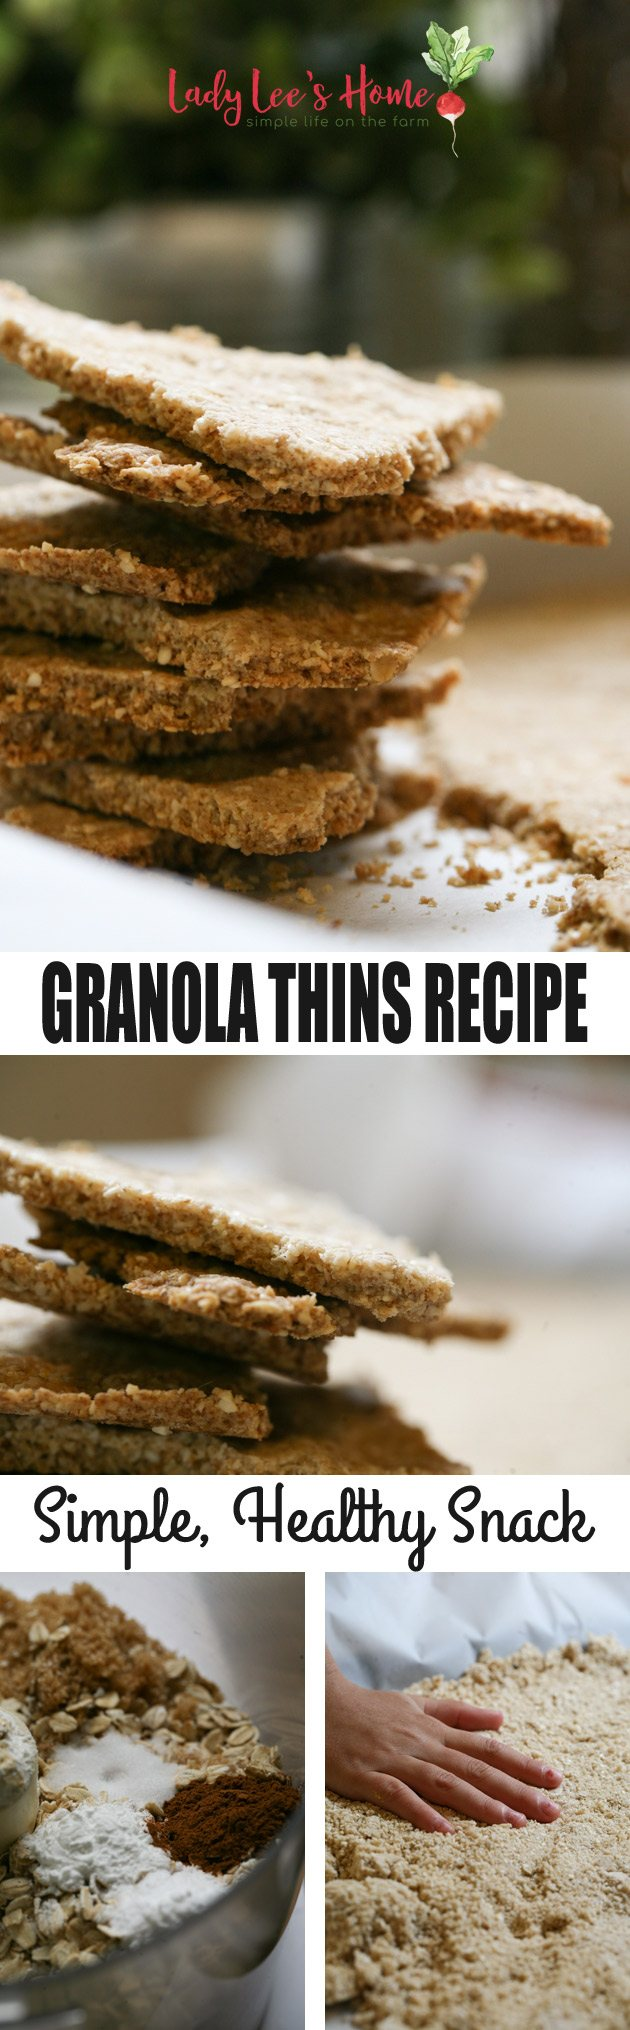 Easy and healthy granola thins recipe that you can add anything you'd like to. A great snack or breakfast! #LadyLeesHome #granola #snack #easyrecipes #healthyrecipes